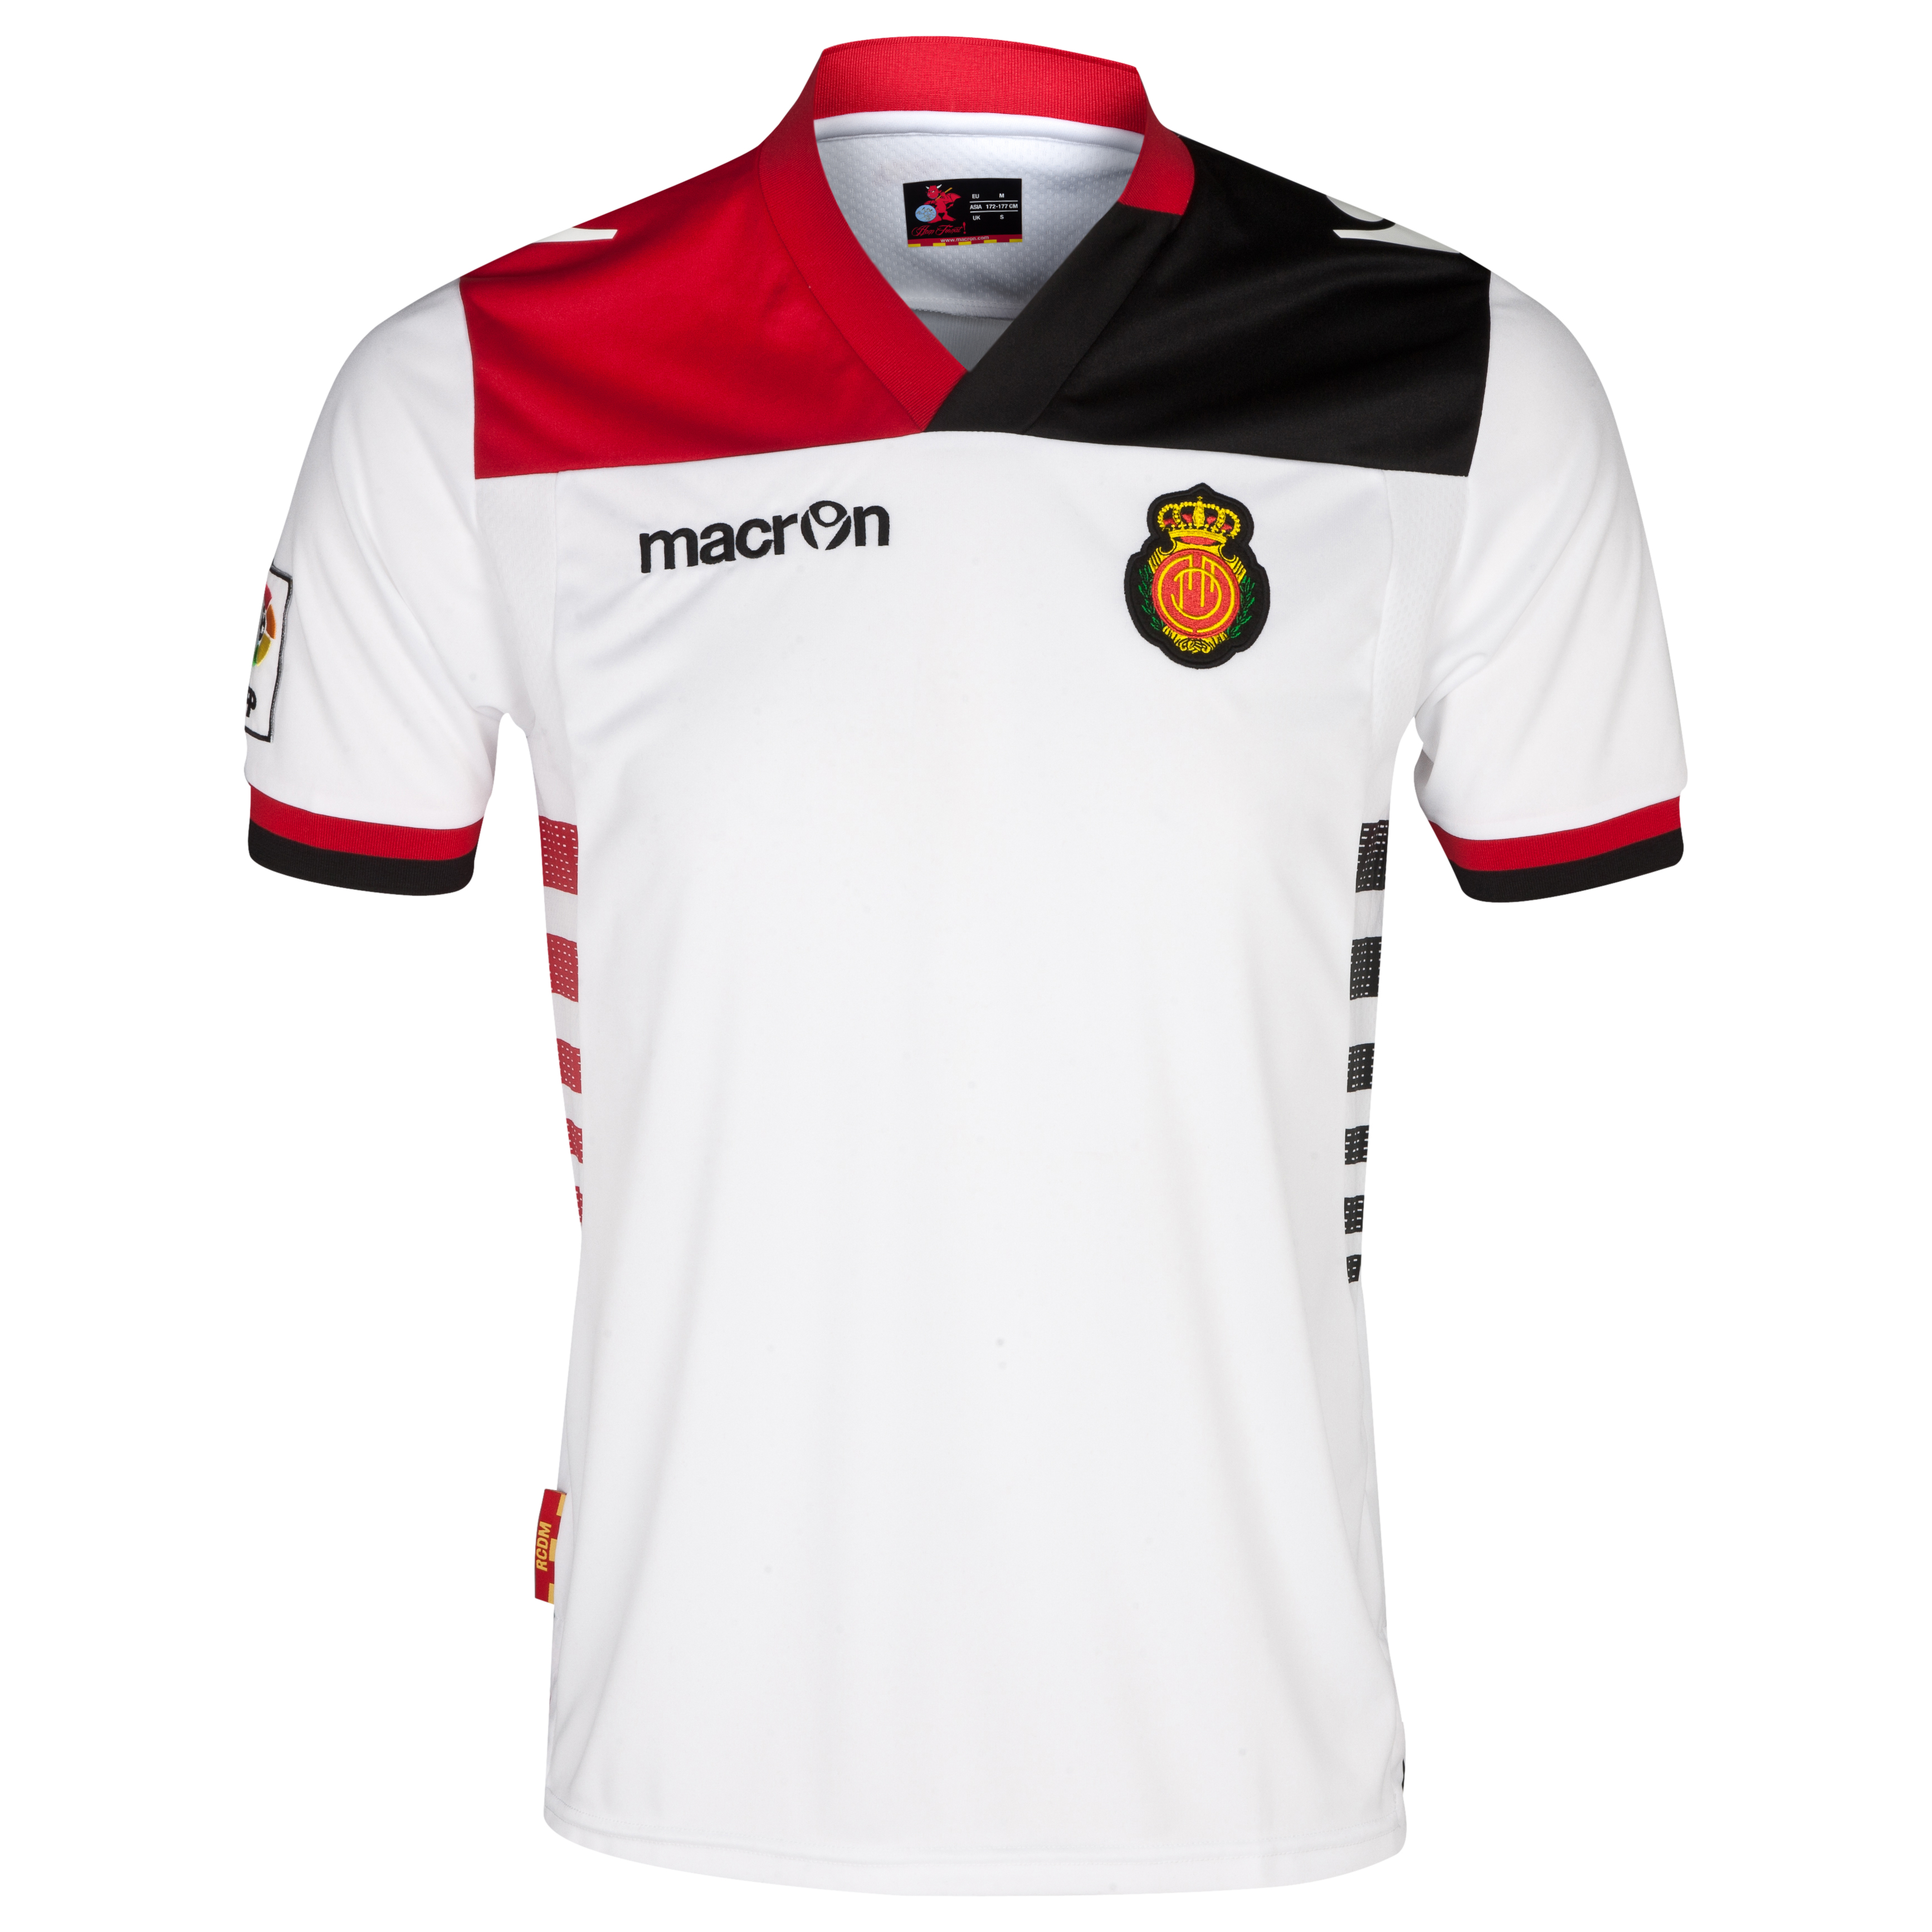 RCD Mallorca Away Shirt 2013/14